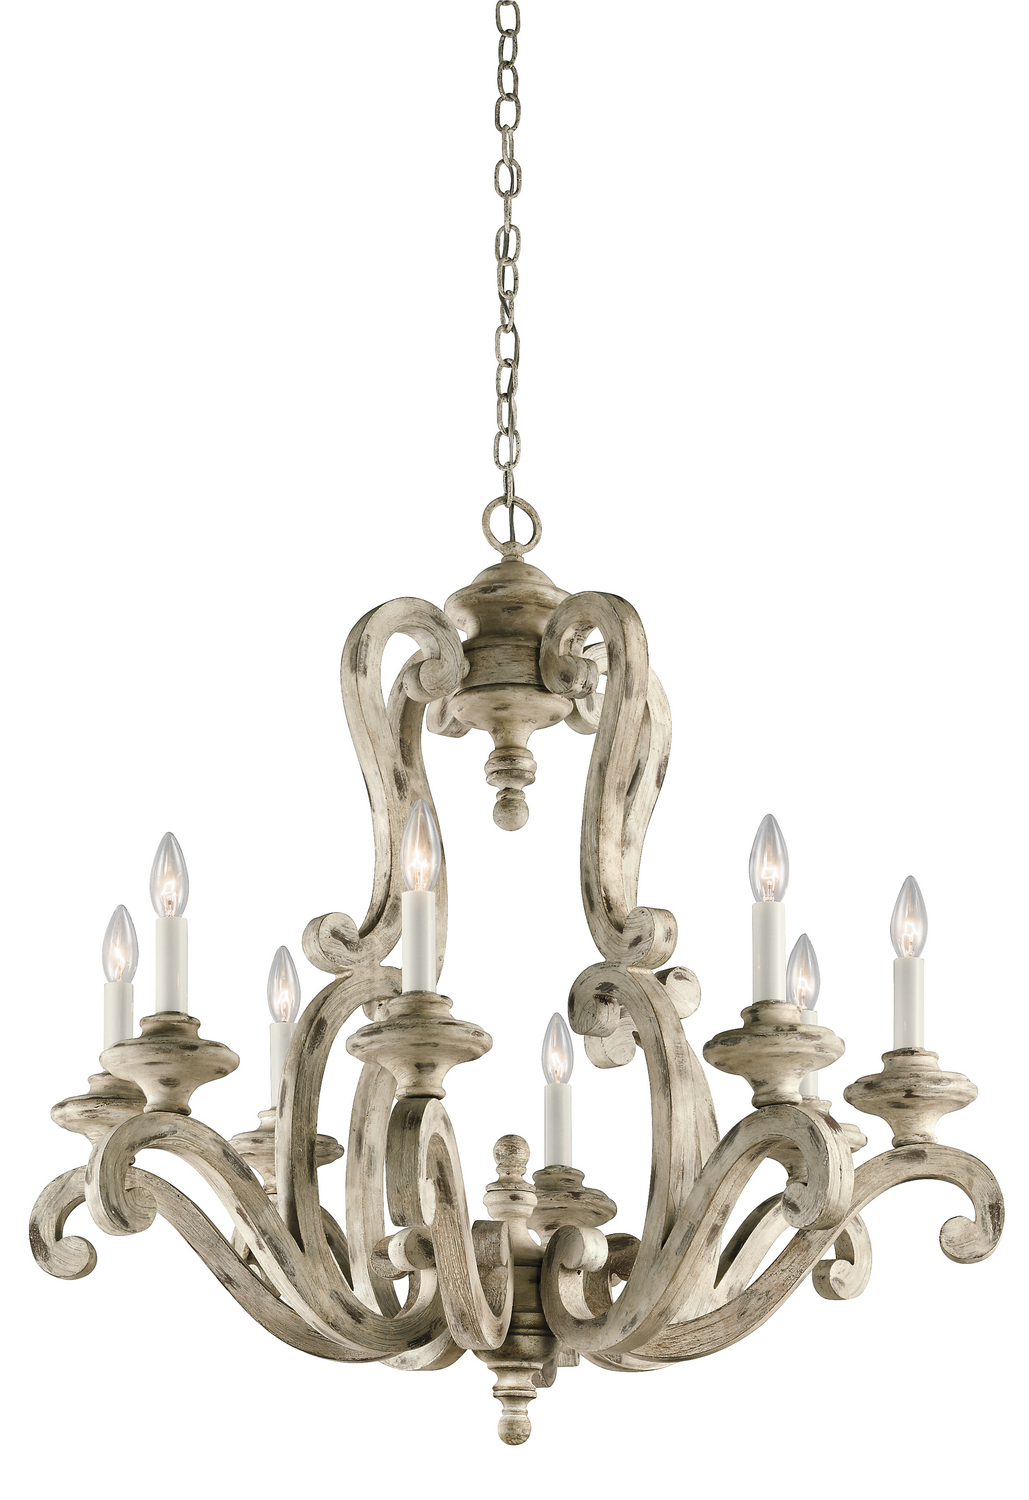 Eight Light Chandelier from the Hayman Bay collection by Kichler 43265DAW